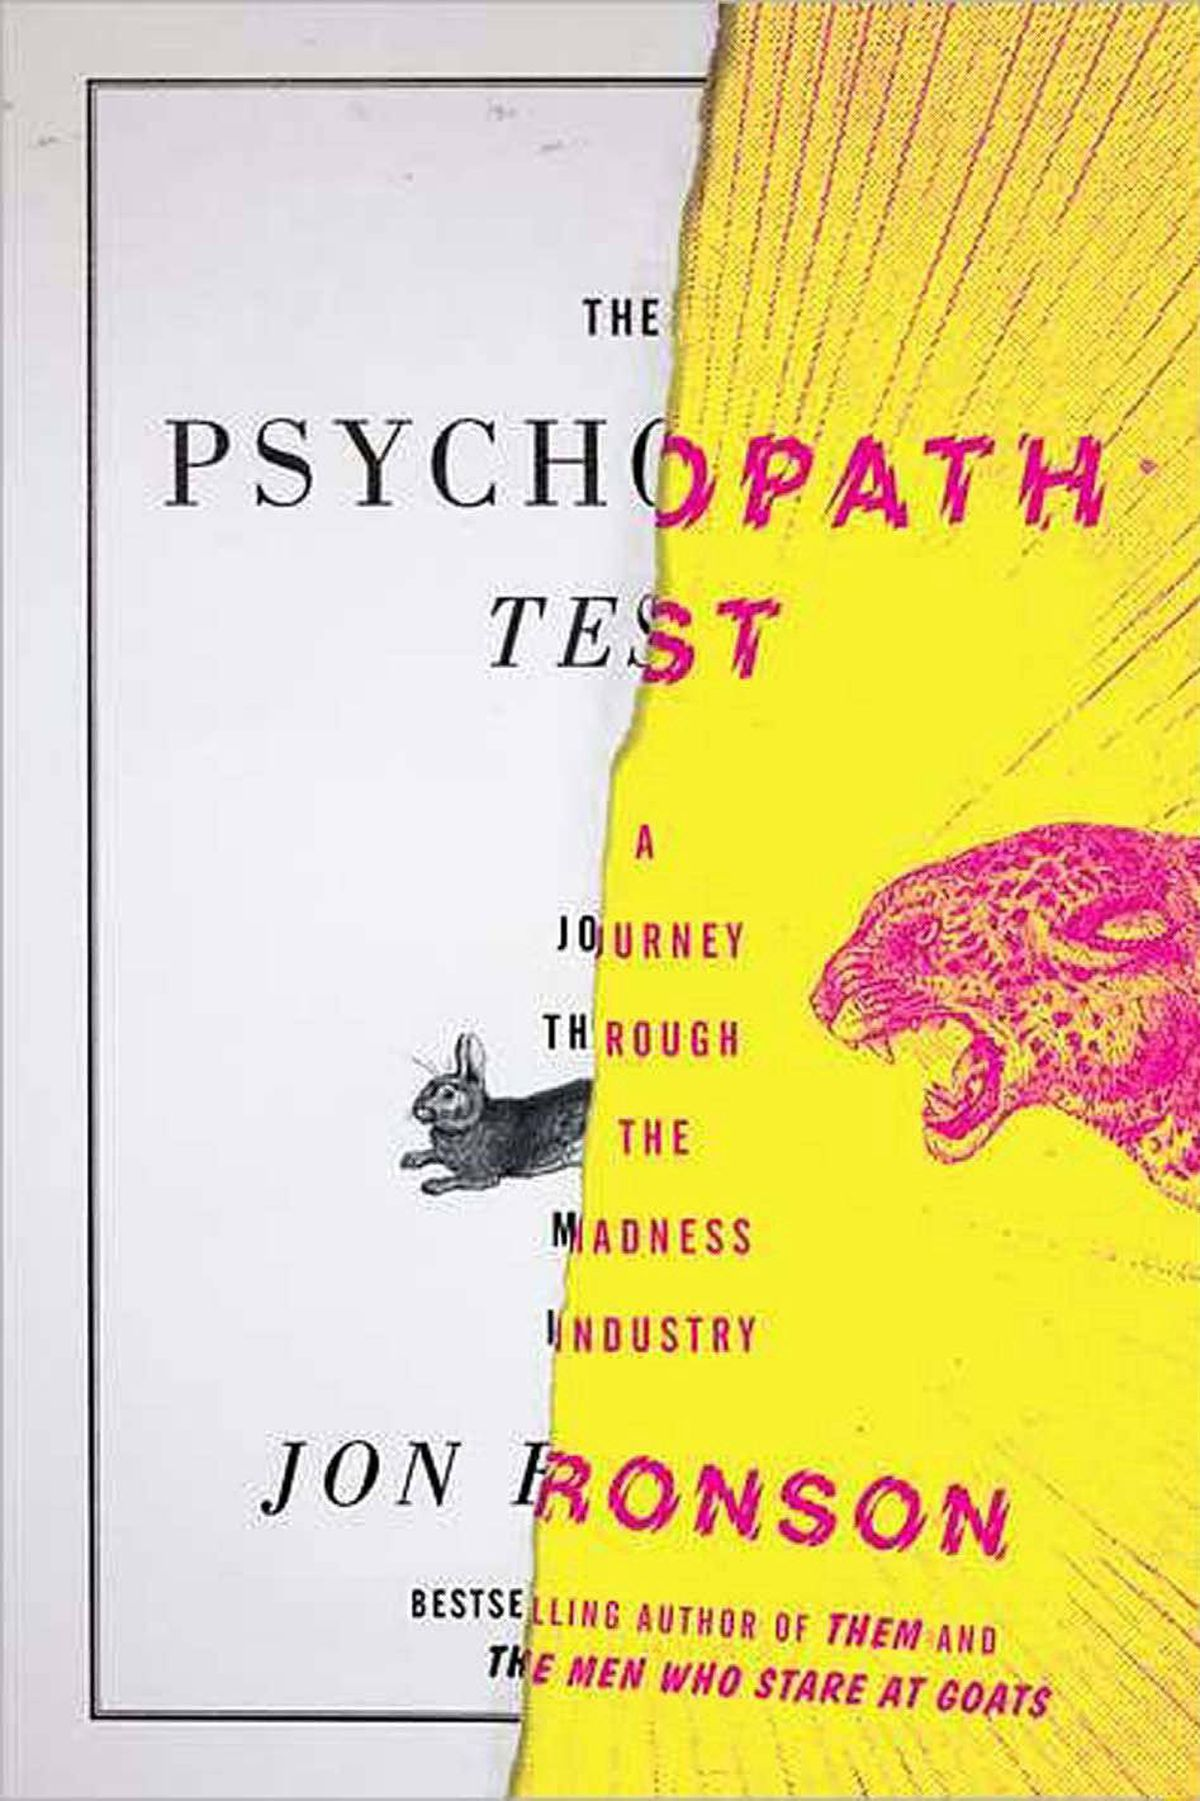 THE PSYCHOPATH TEST A Journey Through the Madness Industry By Jon Ronson (Riverhead) Ronson's effort to plumb the depths of psychopathology seems like a contemporary version of Alice in Wonderland. The journey, including encounters with conspiracy theorists and reality-TV producers, is sometimes hilarious, sometimes alarming and always entertaining. – Christopher Dewdney